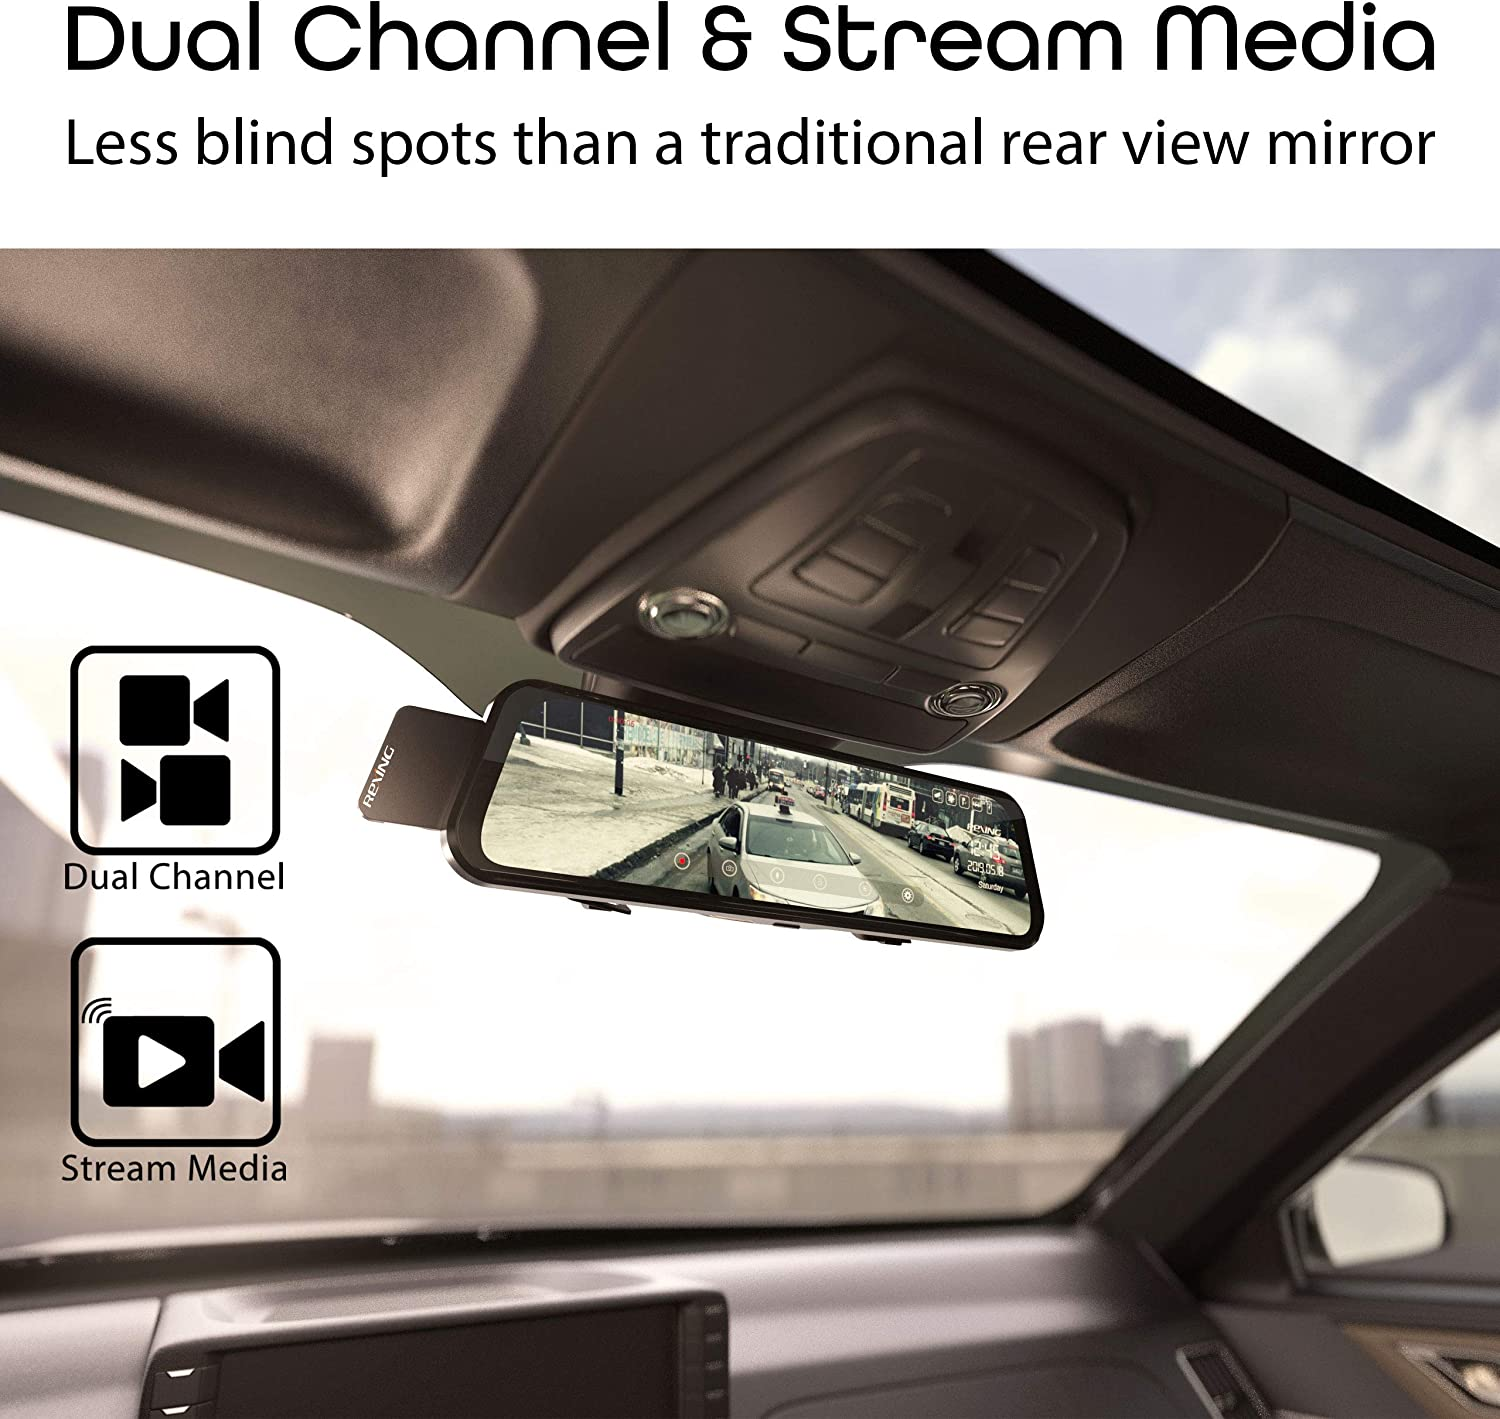 """G-Sensor Rexing M1 HD Dual Channel Rear View 10/"""" IPS Touch Screen Mirror Dash Cam 1296p Backup Camera 720p Wide Angle Dashboard Streaming Media Recorder DVR with Rear Camera Loop Recording"""